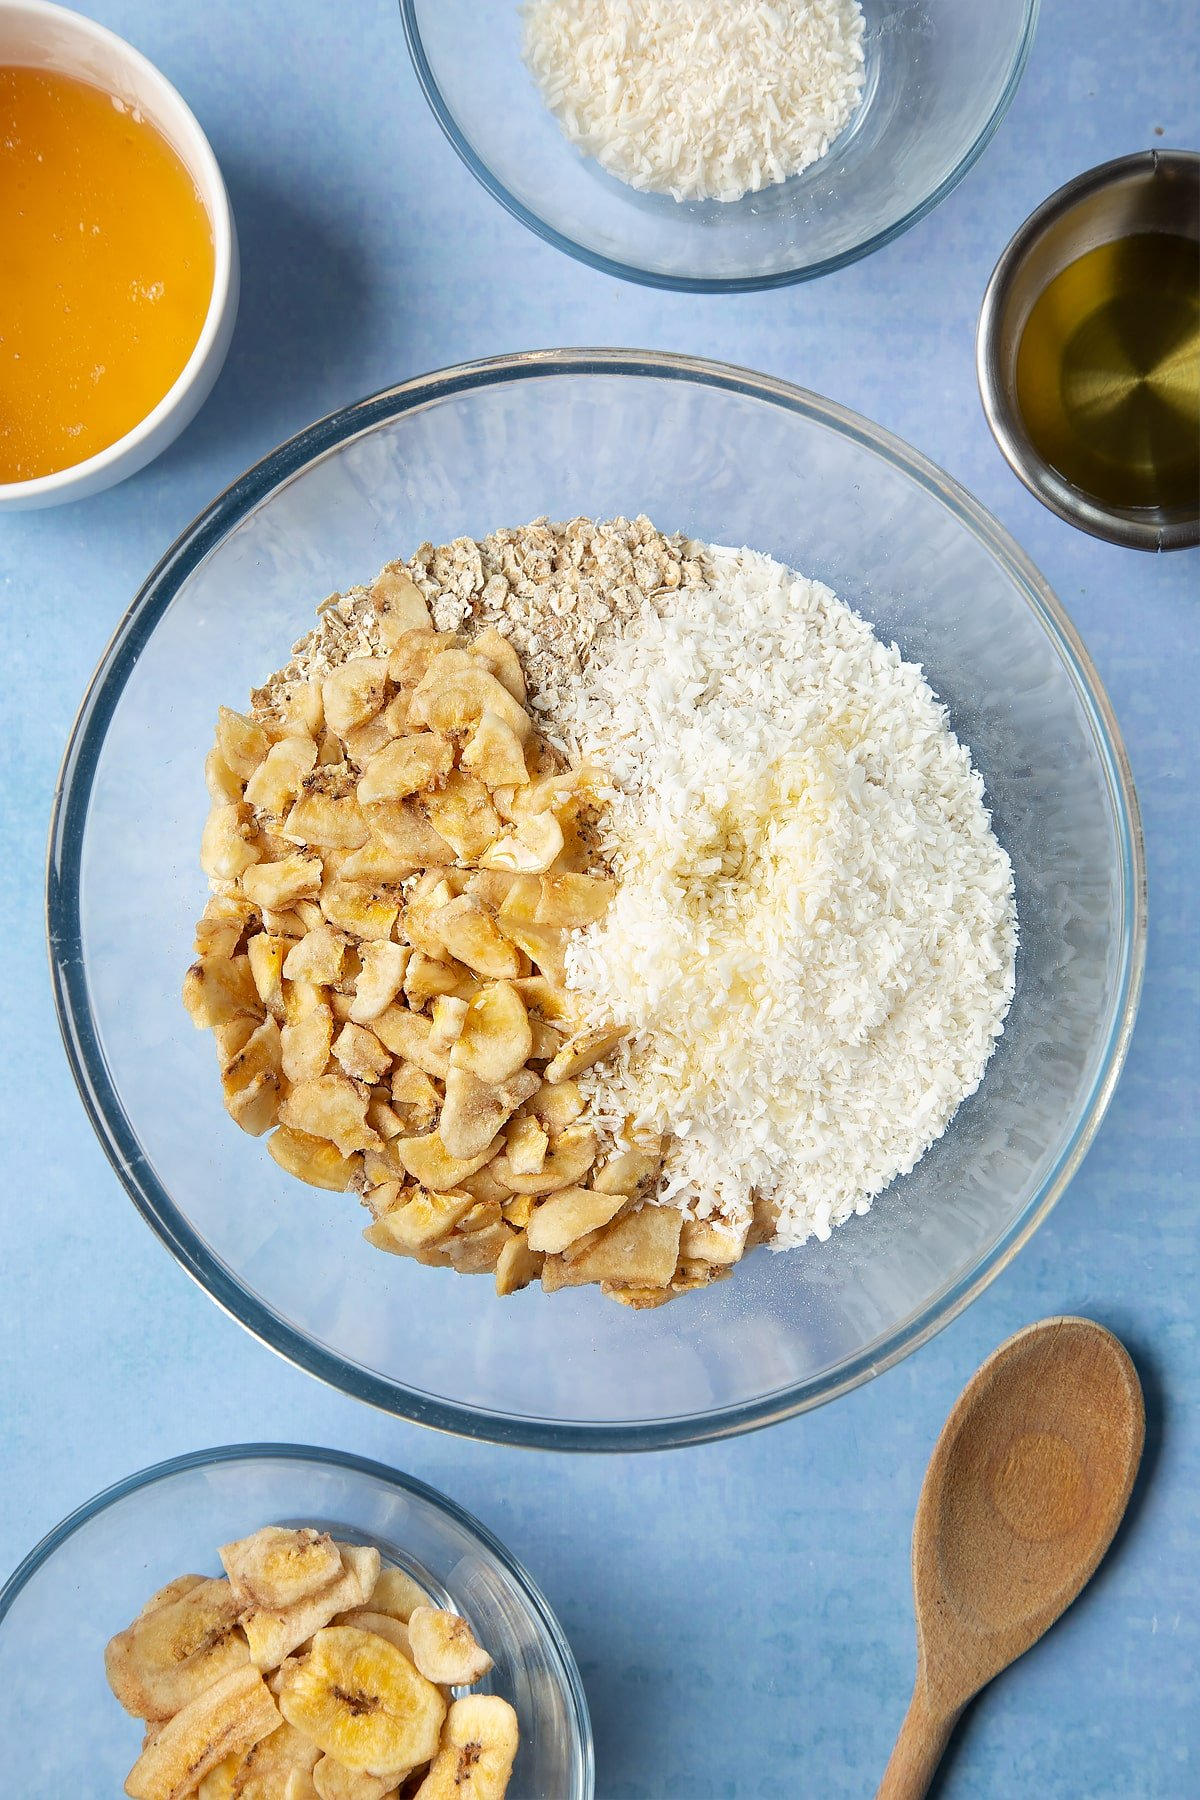 A large glass mixing bowl containing rolled oats, dried banana chips, desiccated coconut and oil. Ingredients to make a banana coconut granola recipe surround the bowl.